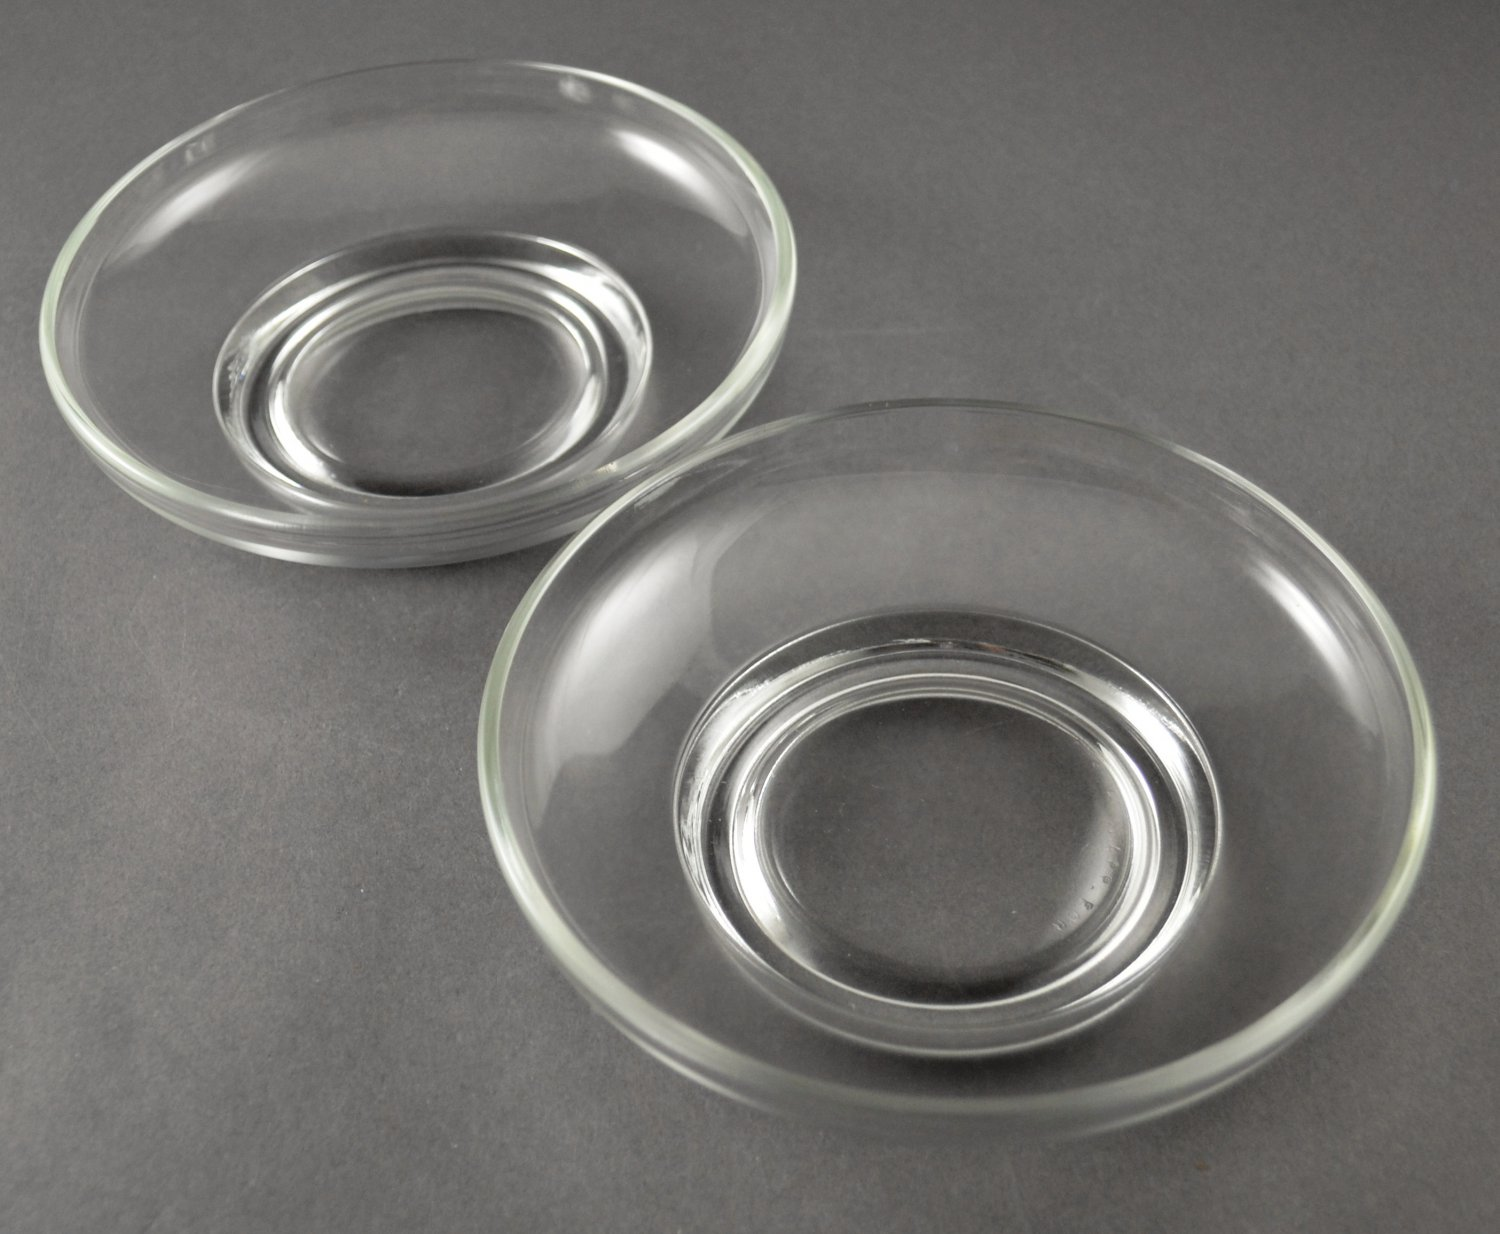 Set of 2 Small Bowls Plain Low Round Clear Glass w/ Collar Base